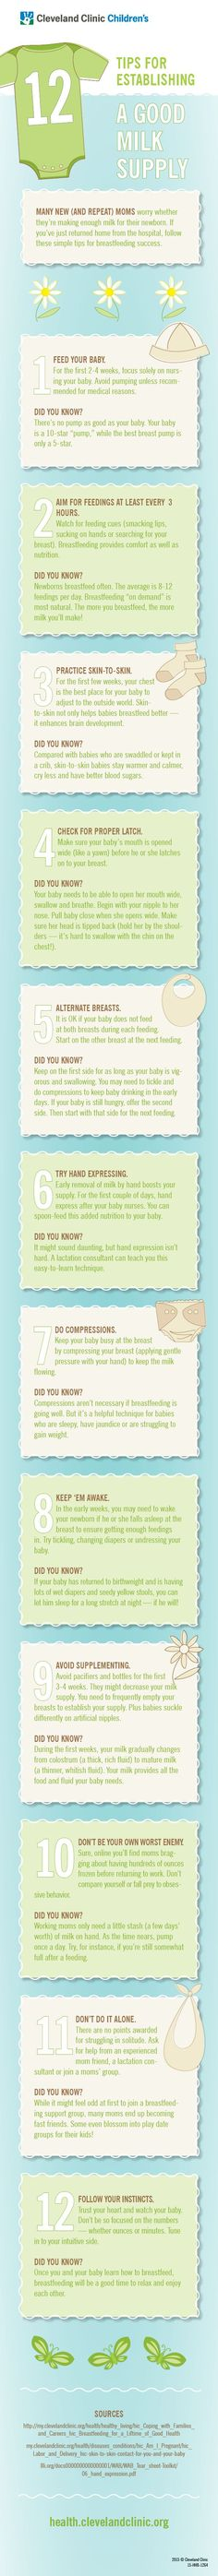 Worried about having enough milk for your new baby? Get off to a good start breastfeeding with these tips. 12 Tips for Establishing a Good Breast Milk Supply Nursing Tips, Breastfeeding And Pumping, After Baby, Baby On The Way, Baby Time, Baby Hacks, Baby Feeding, Breast Feeding, Baby Sleep